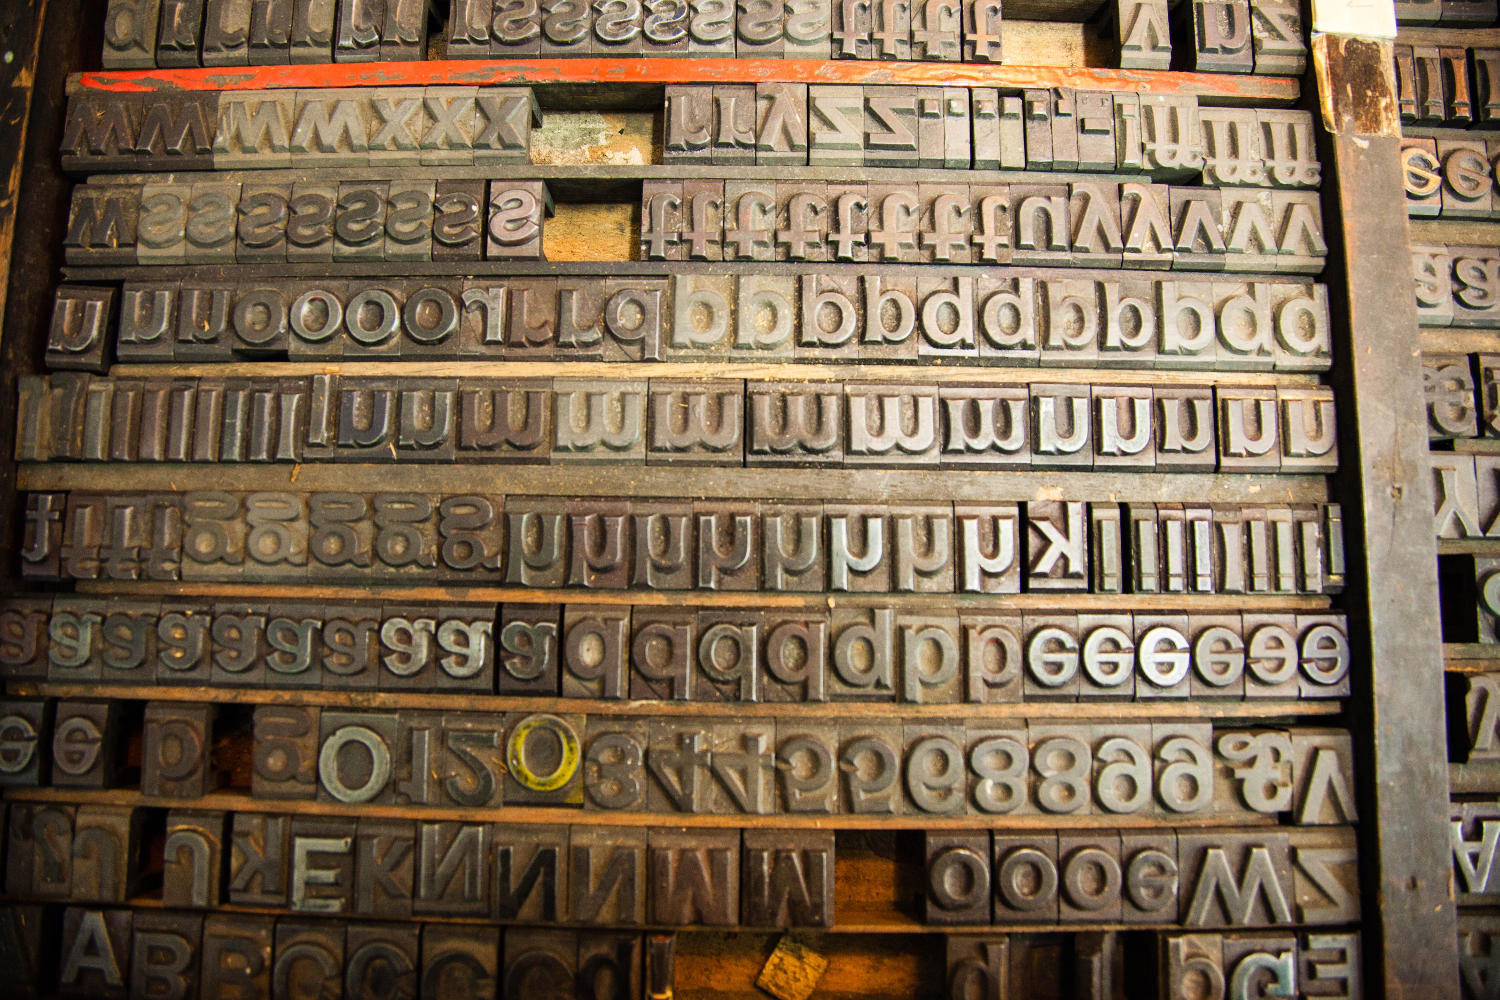 dozens of metal letters ready stacked up